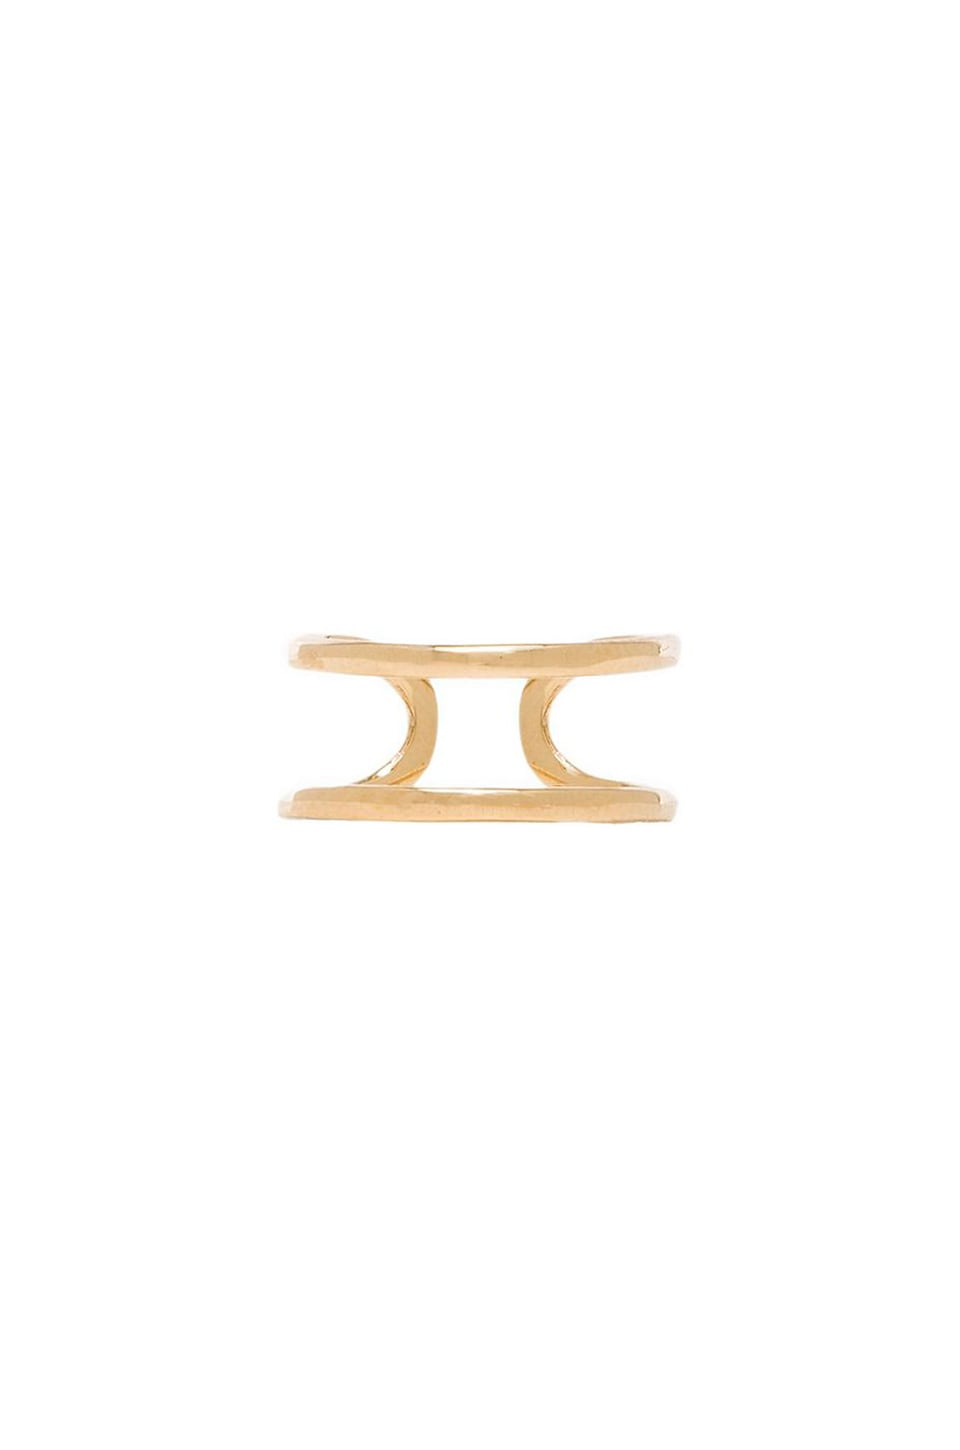 joolz by Martha Calvo Open Bar Knuckle Ring in Gold